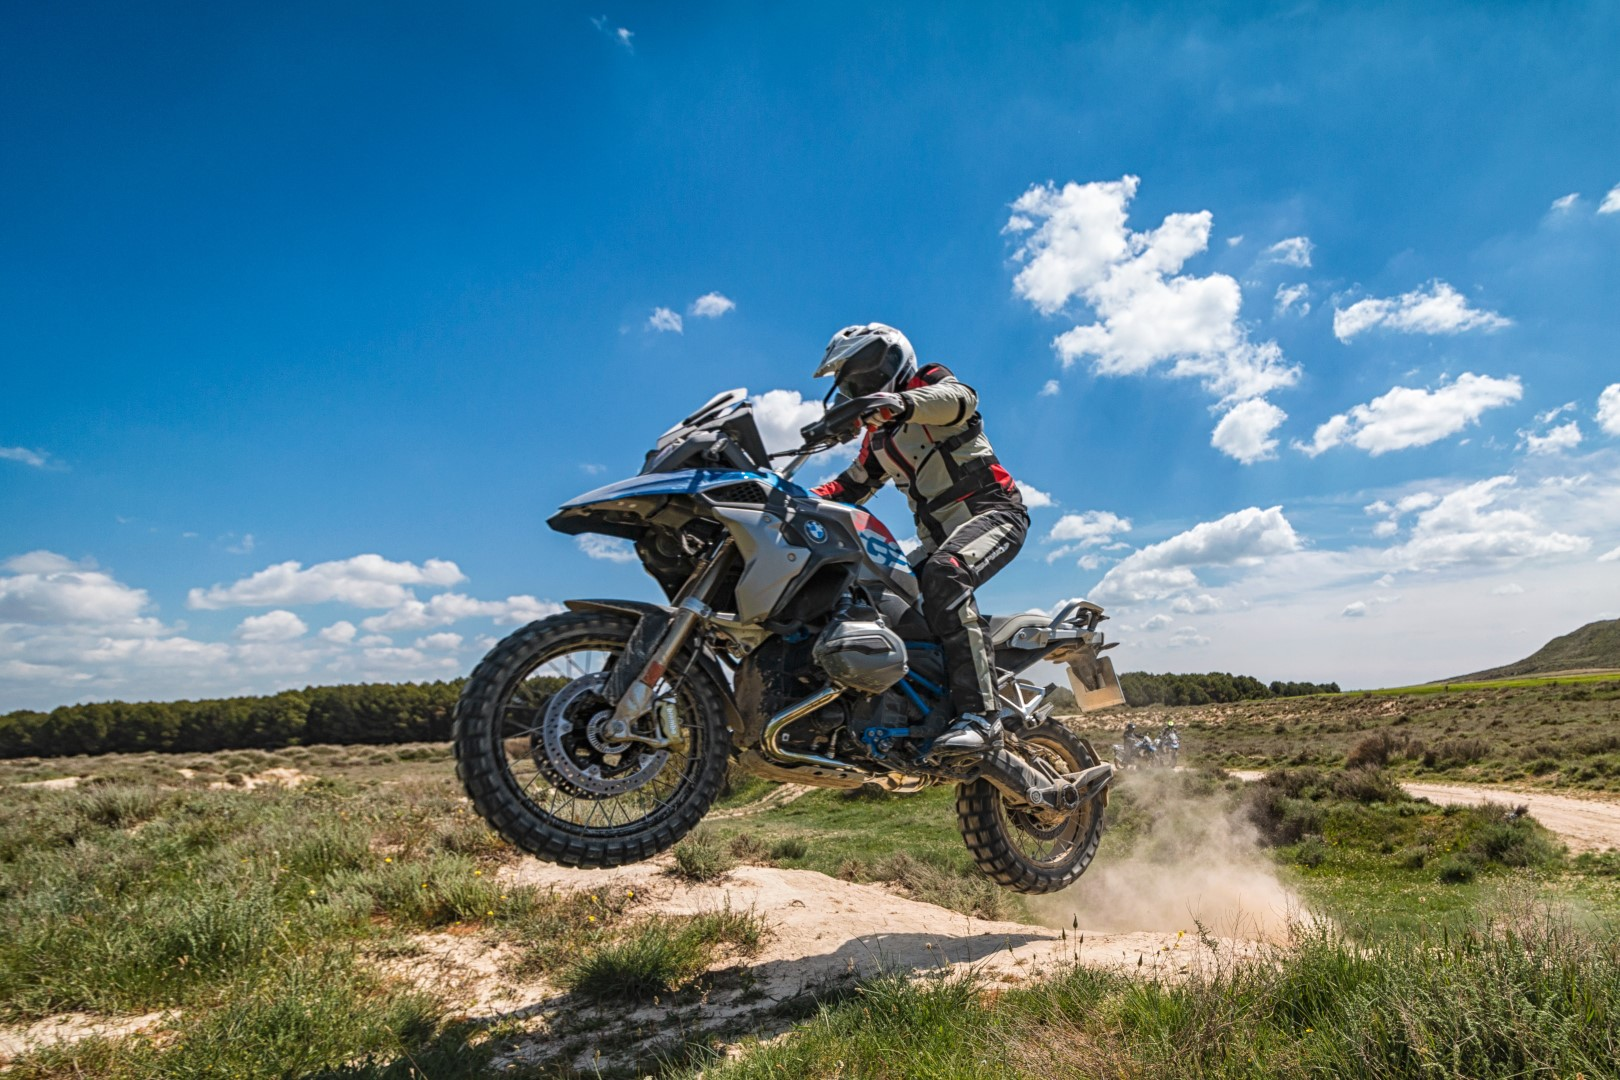 BMW R 1200 GS Ride. Fotos